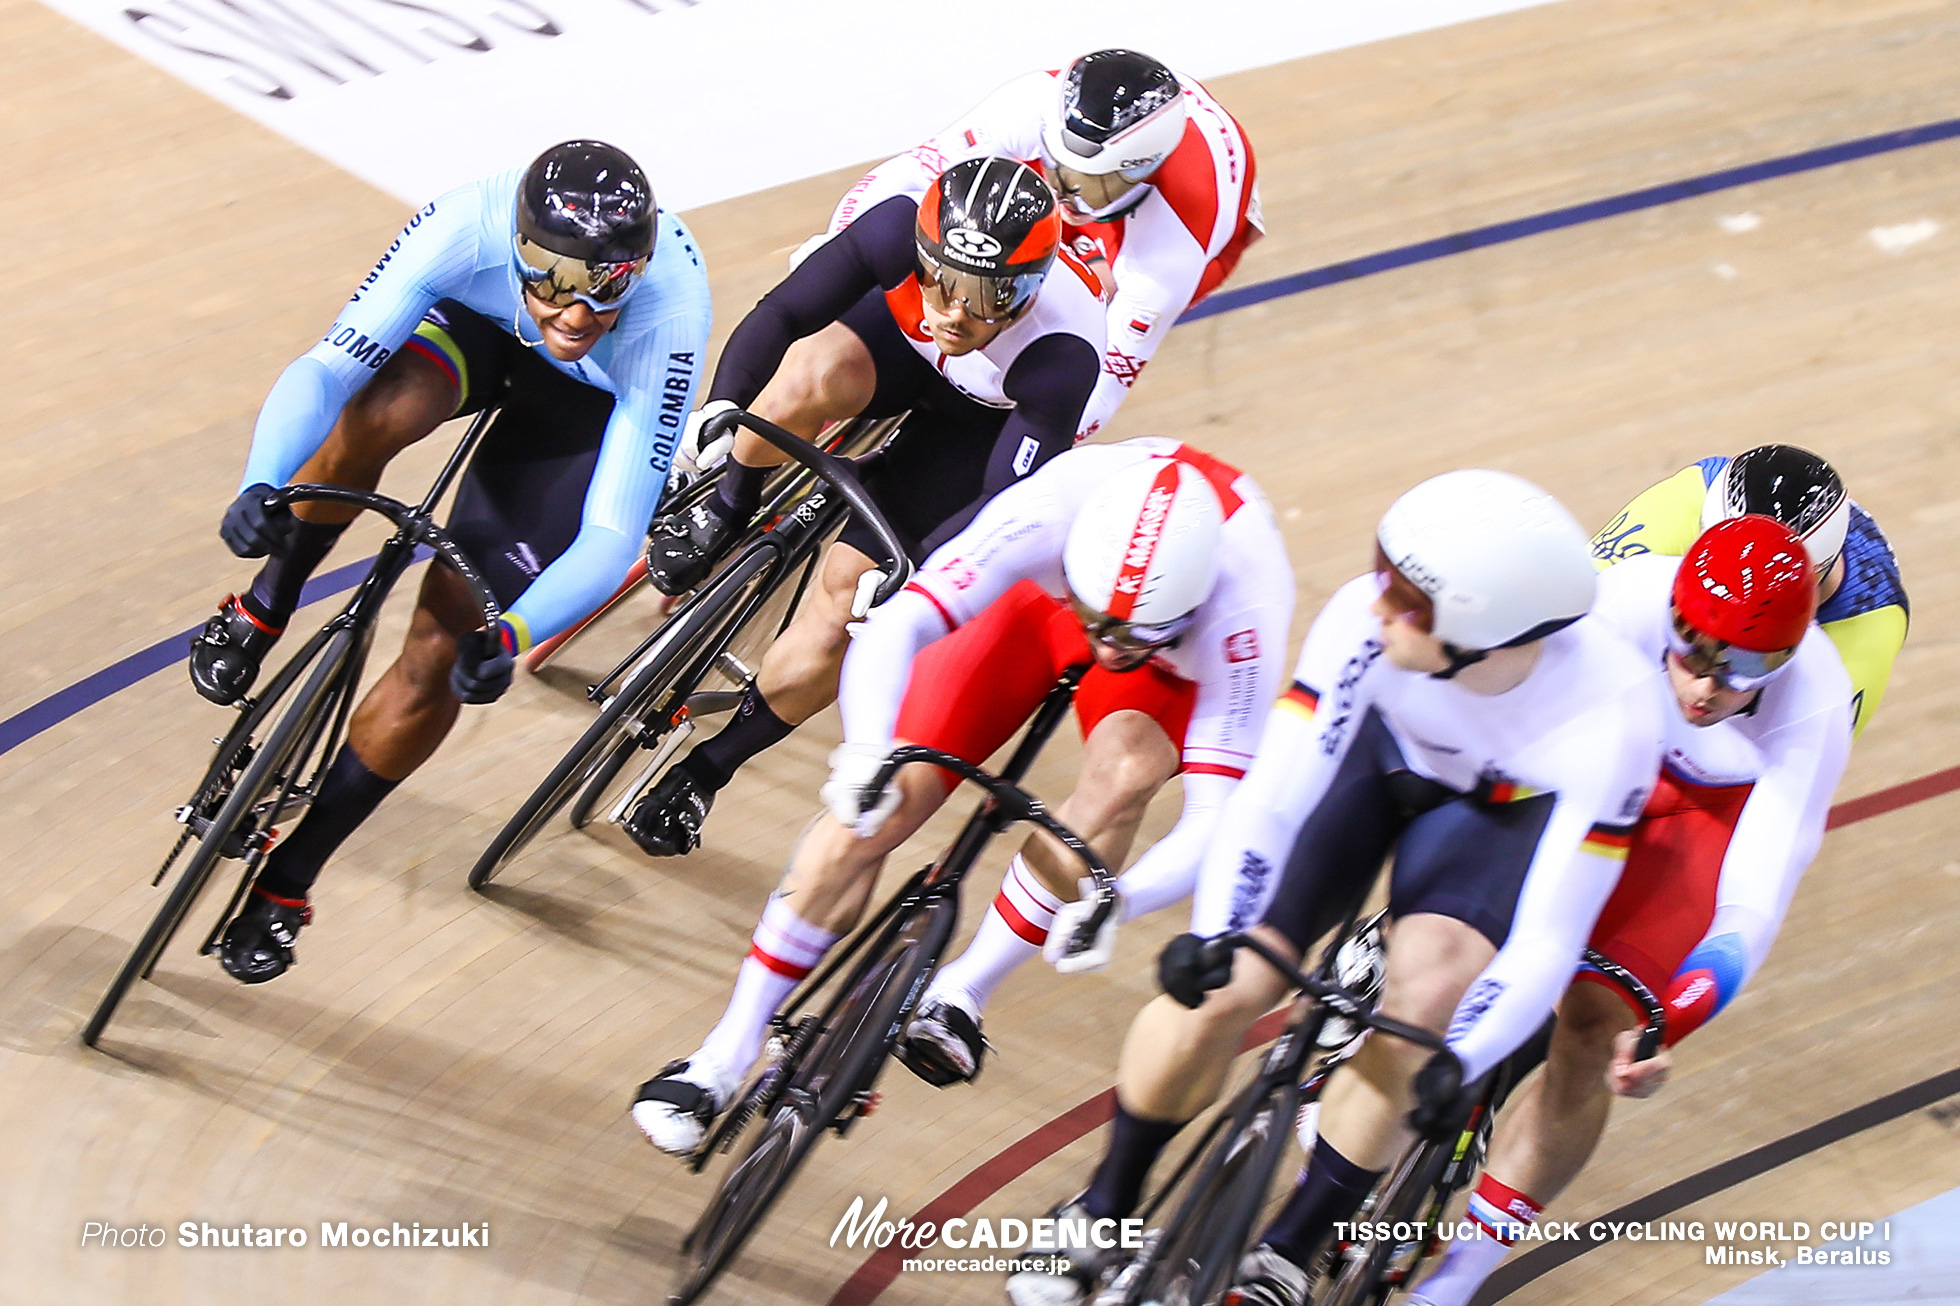 1st Round / Men's Keirin / TISSOT UCI TRACK CYCLING WORLD CUP I, Minsk, Beralus